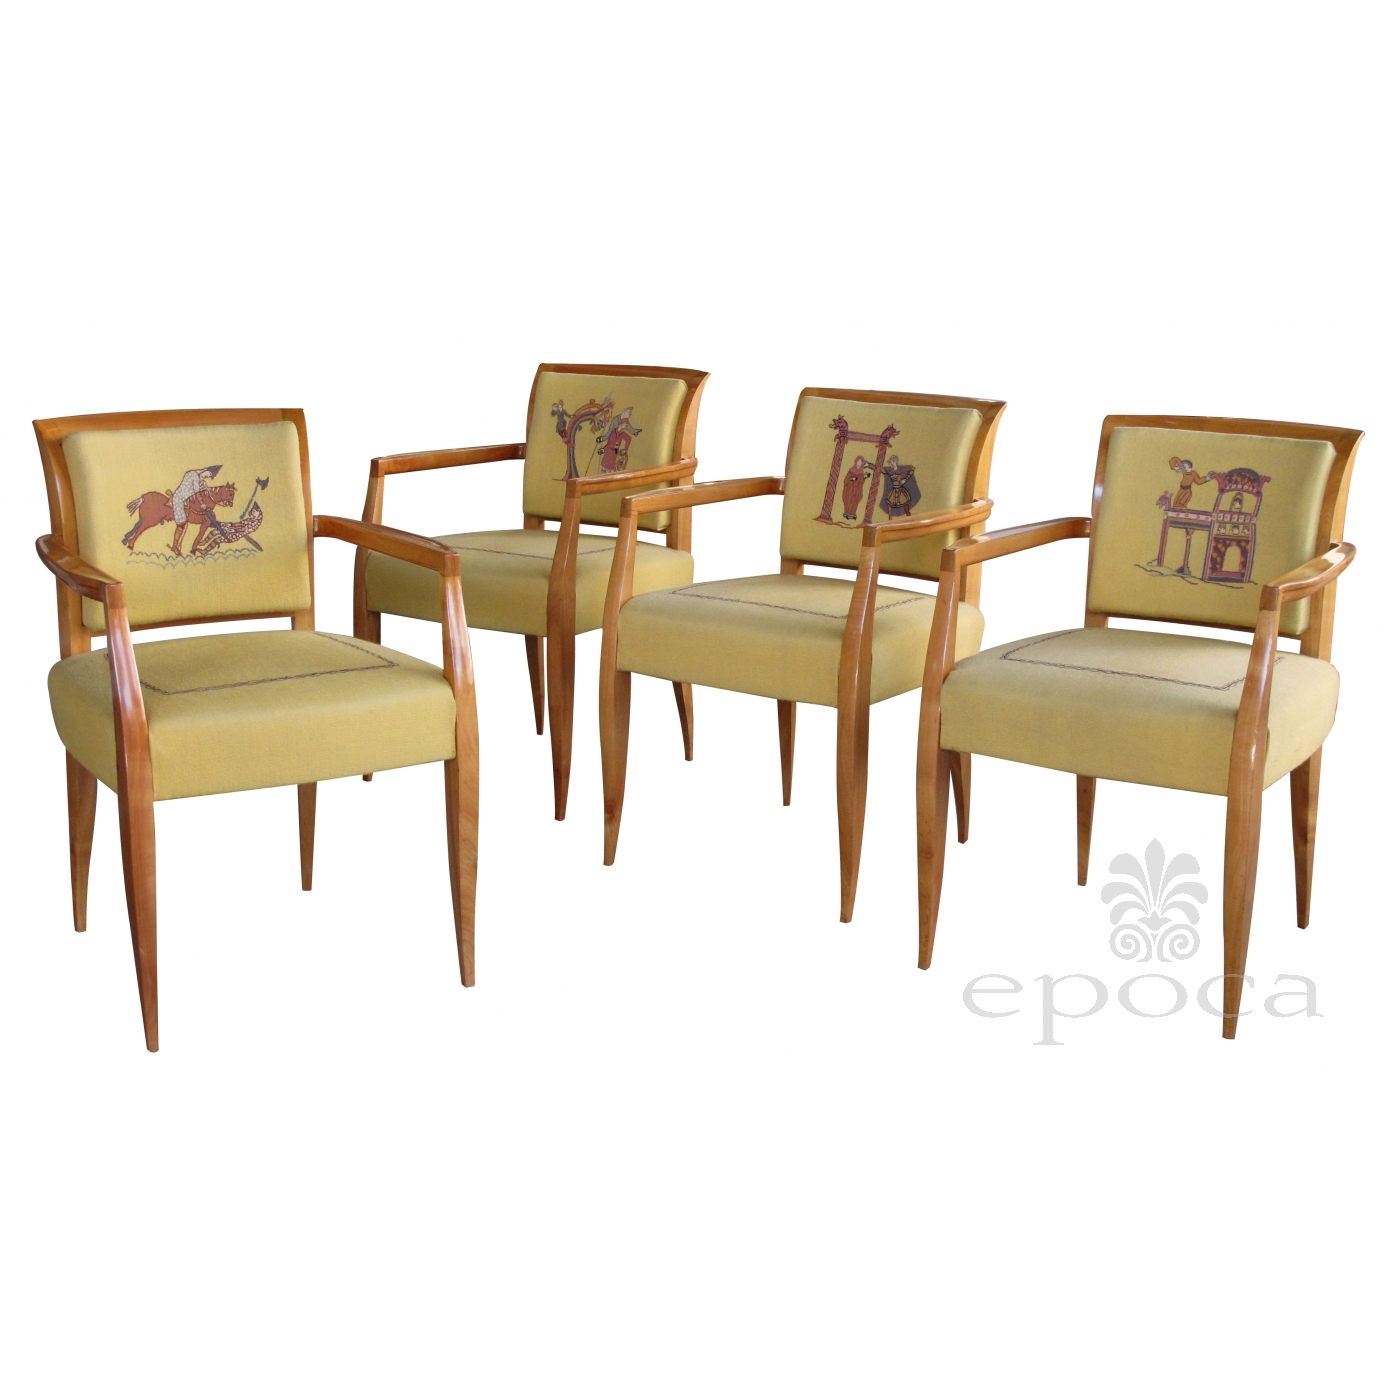 rare and chic set of 4 french maurice dufrene 1940 s sycamore game